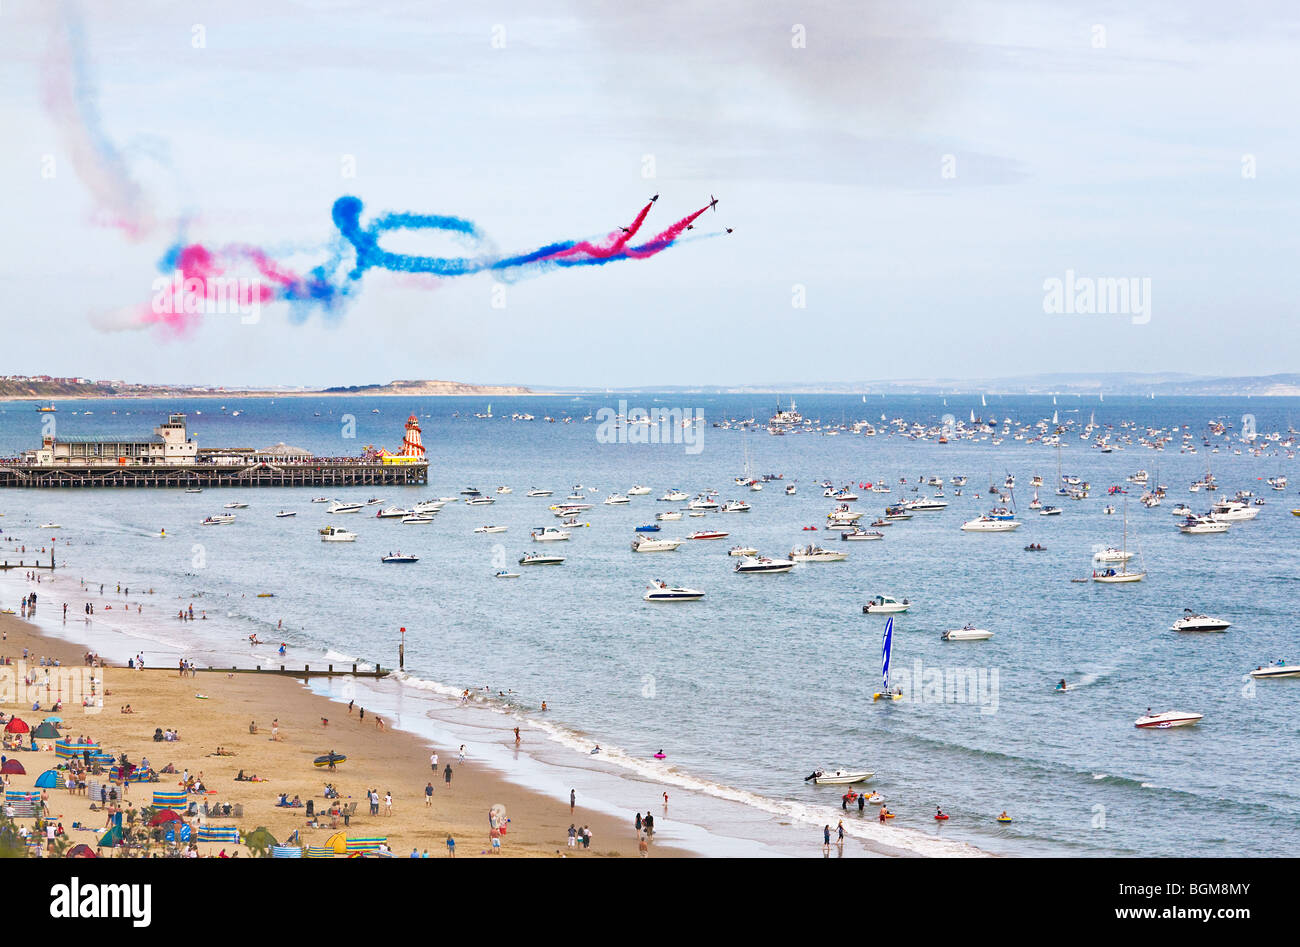 The Red Arrows display team performing their routine over the pier at the Bournemouth Air Festival. Dorset. UK. - Stock Image